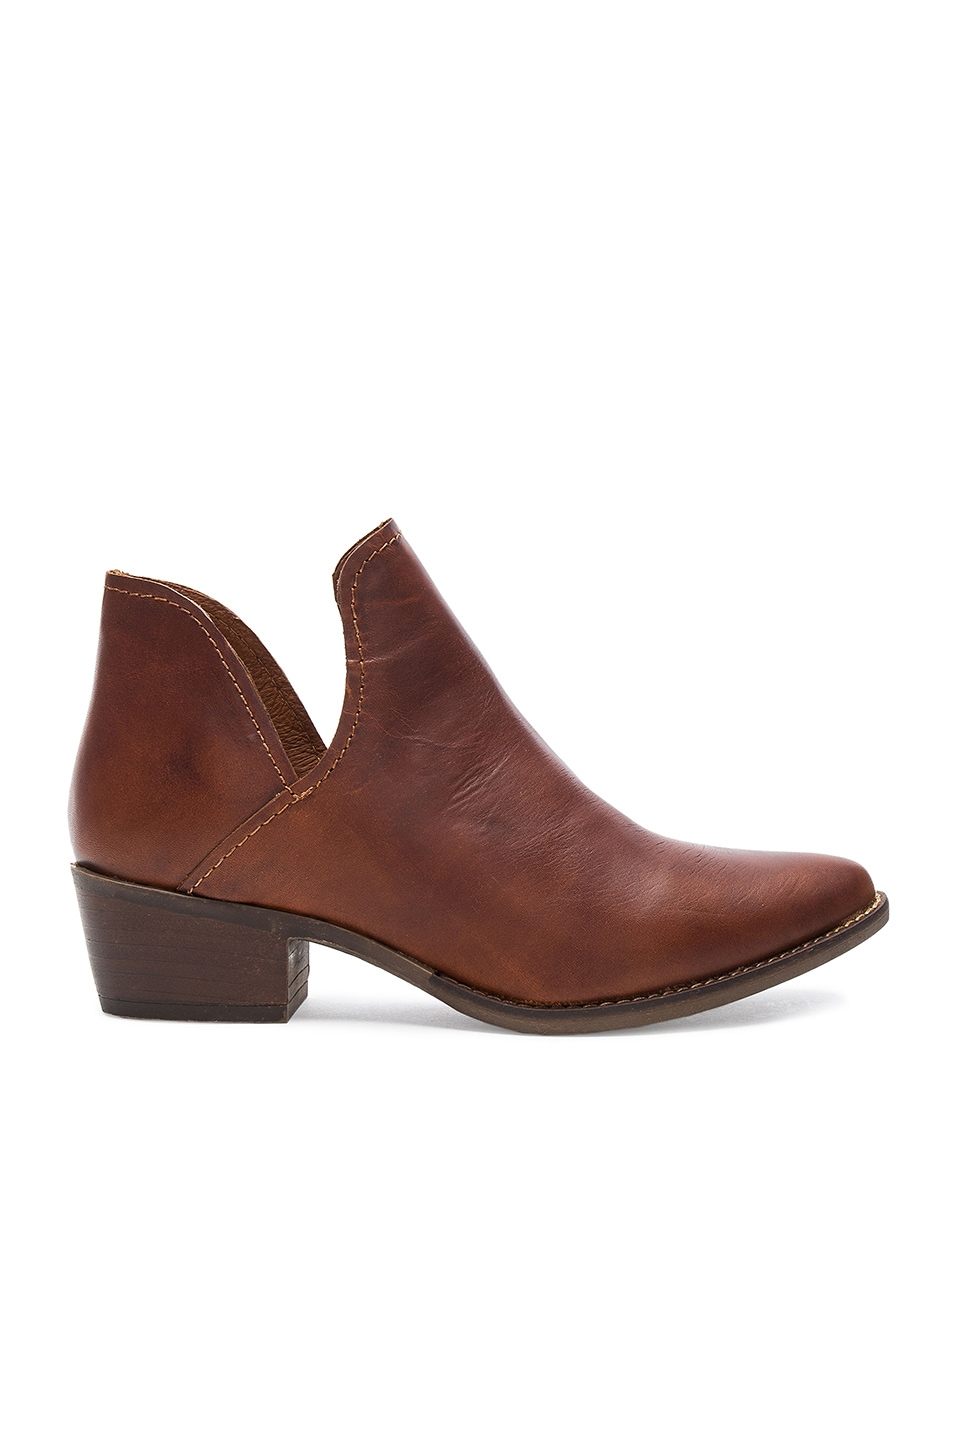 Steve Madden Austin Bootie in Cognac Leather